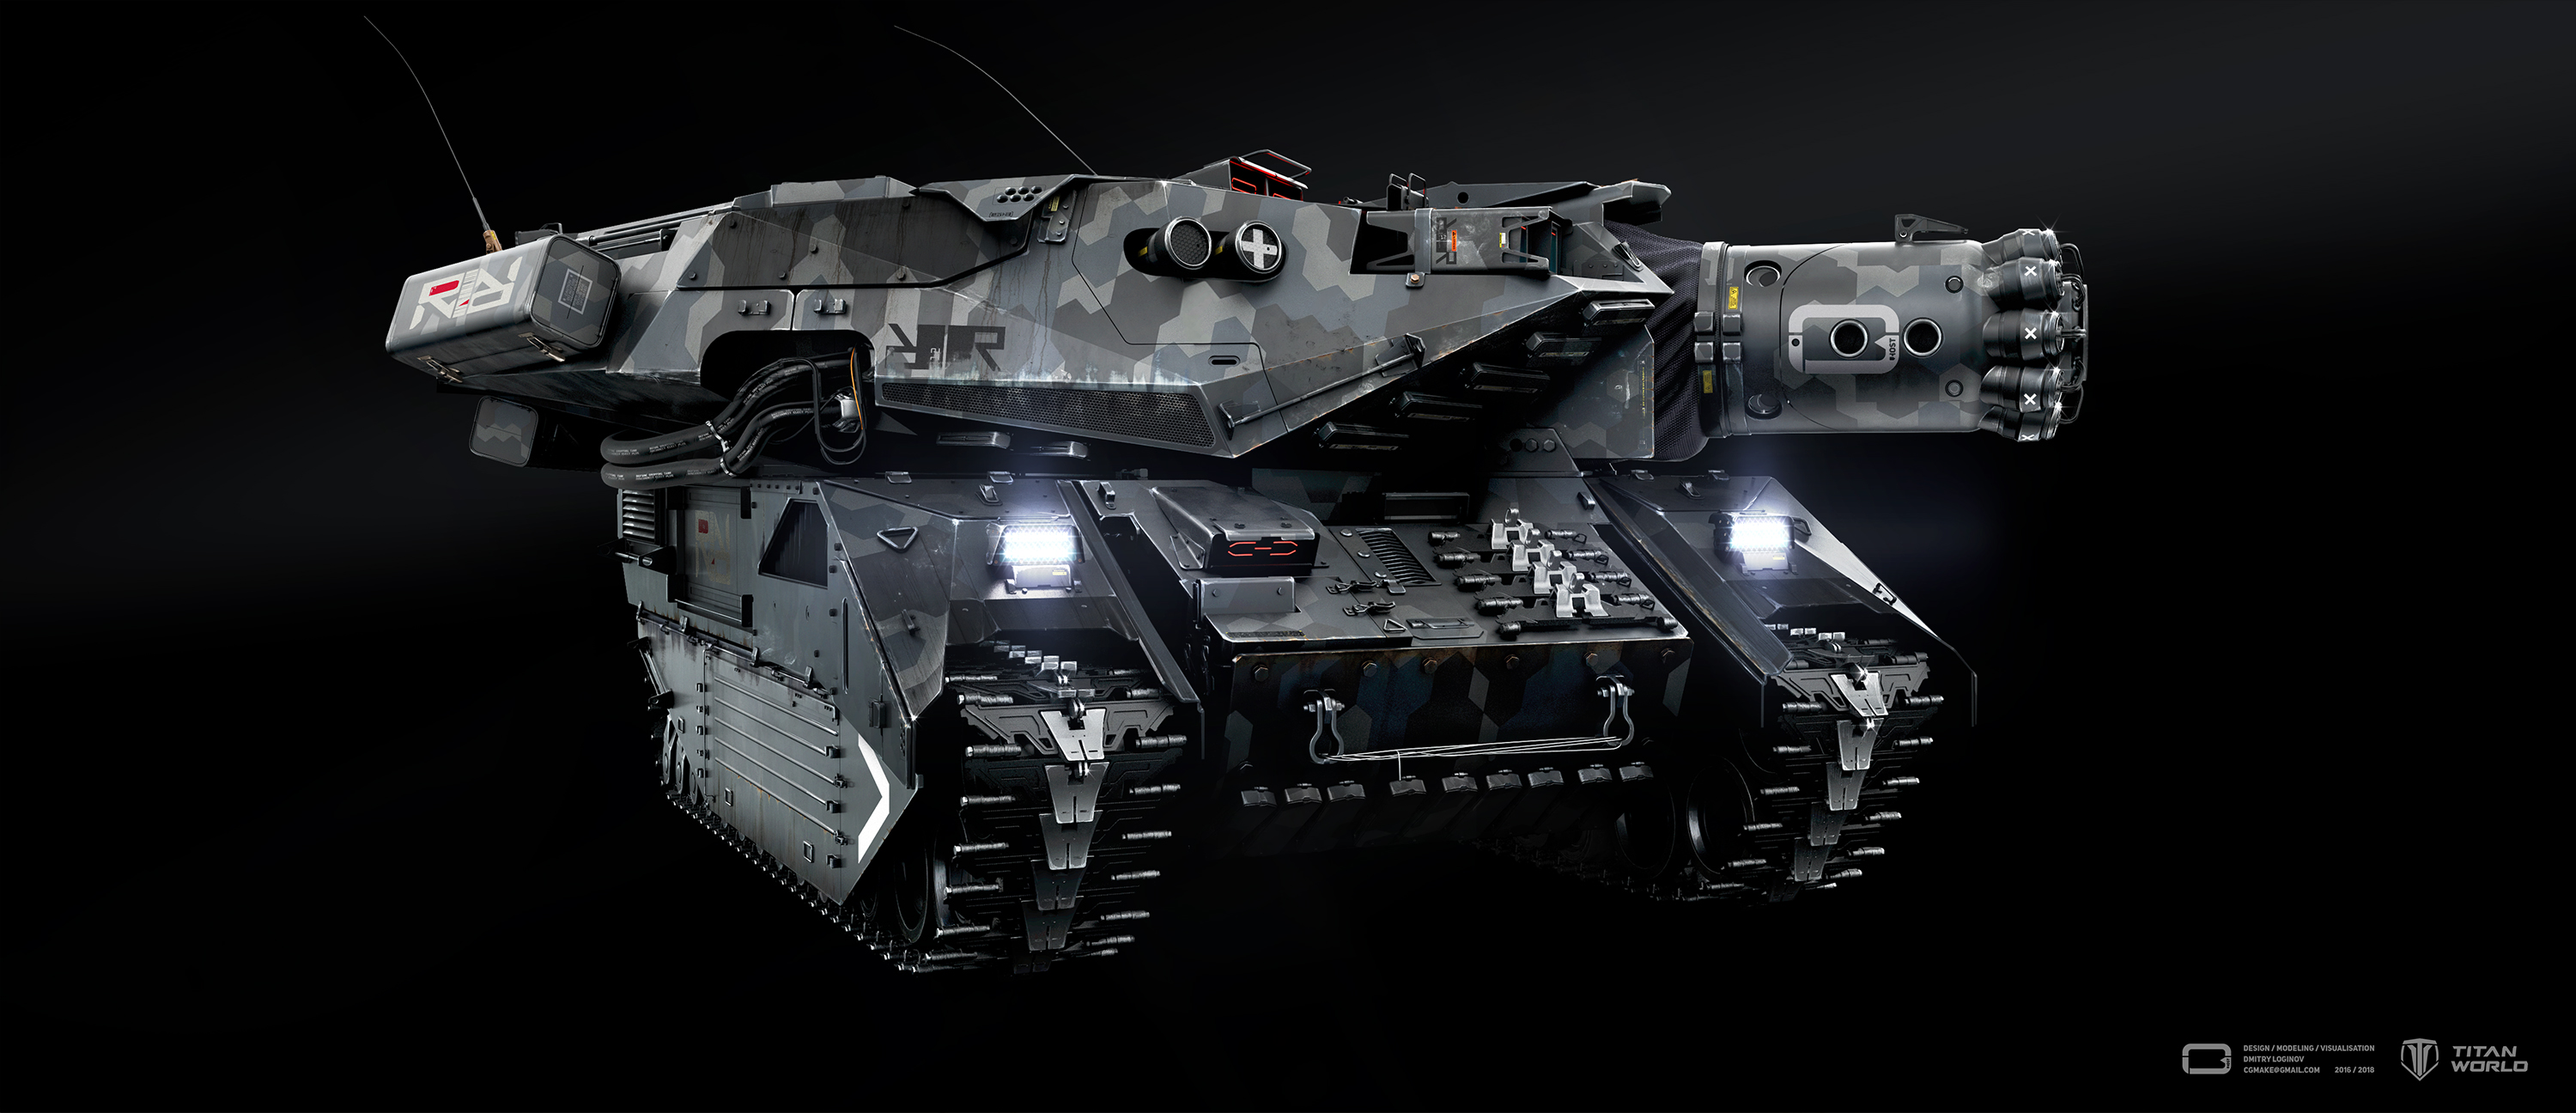 SIEGE TANK in 3d max vray 3.0 image